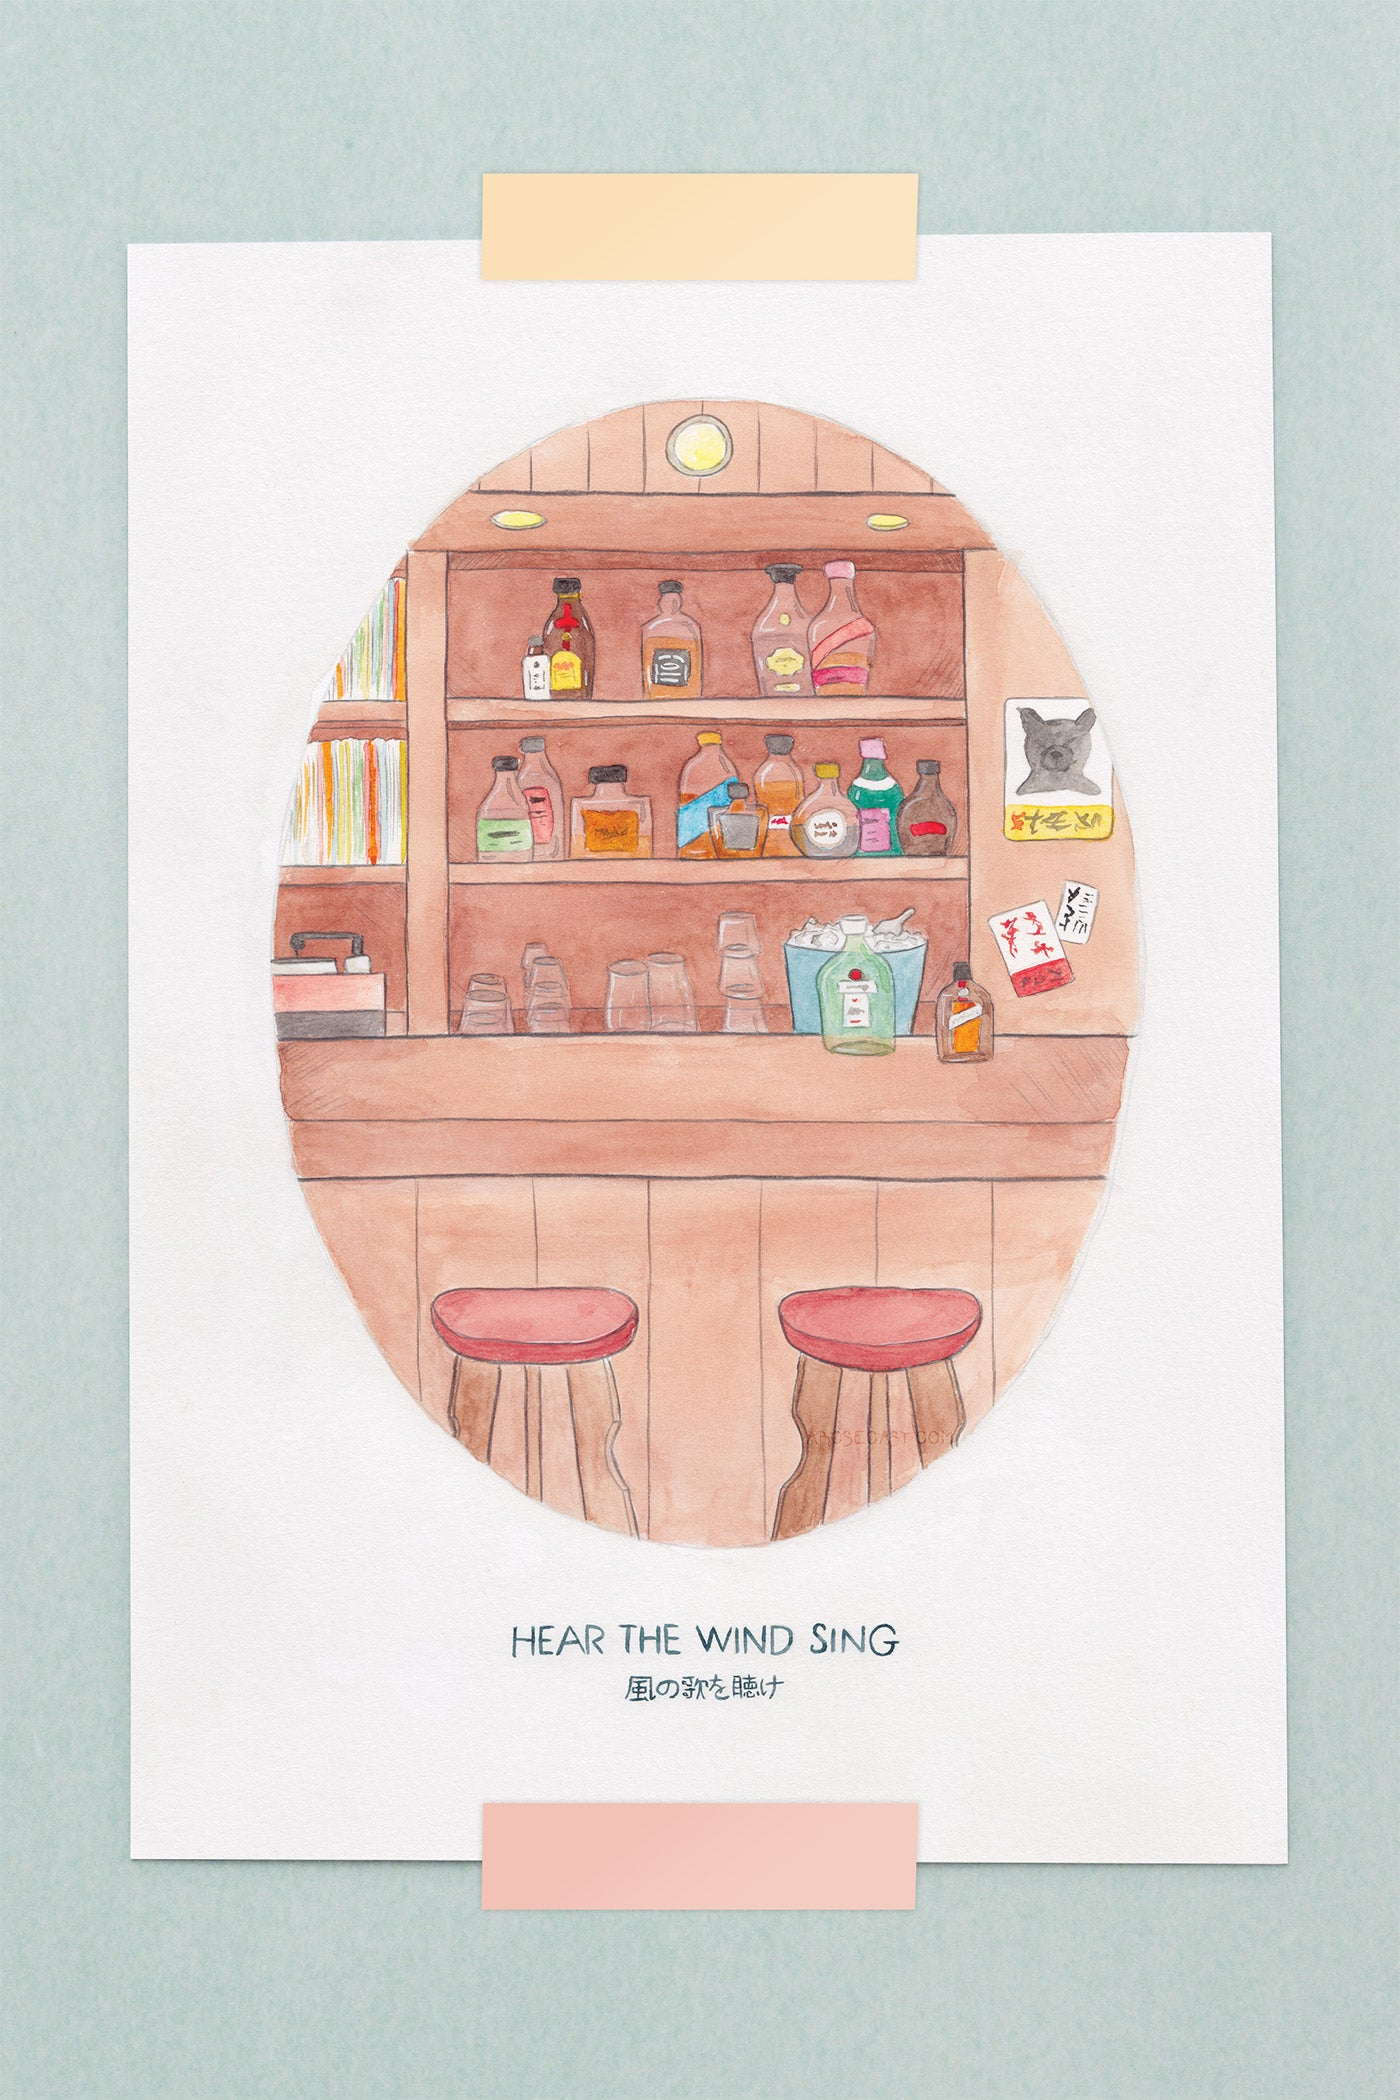 Haruki Murakami's Hear the Wind Sing Novel Illustration Art Print - A Rose Cast